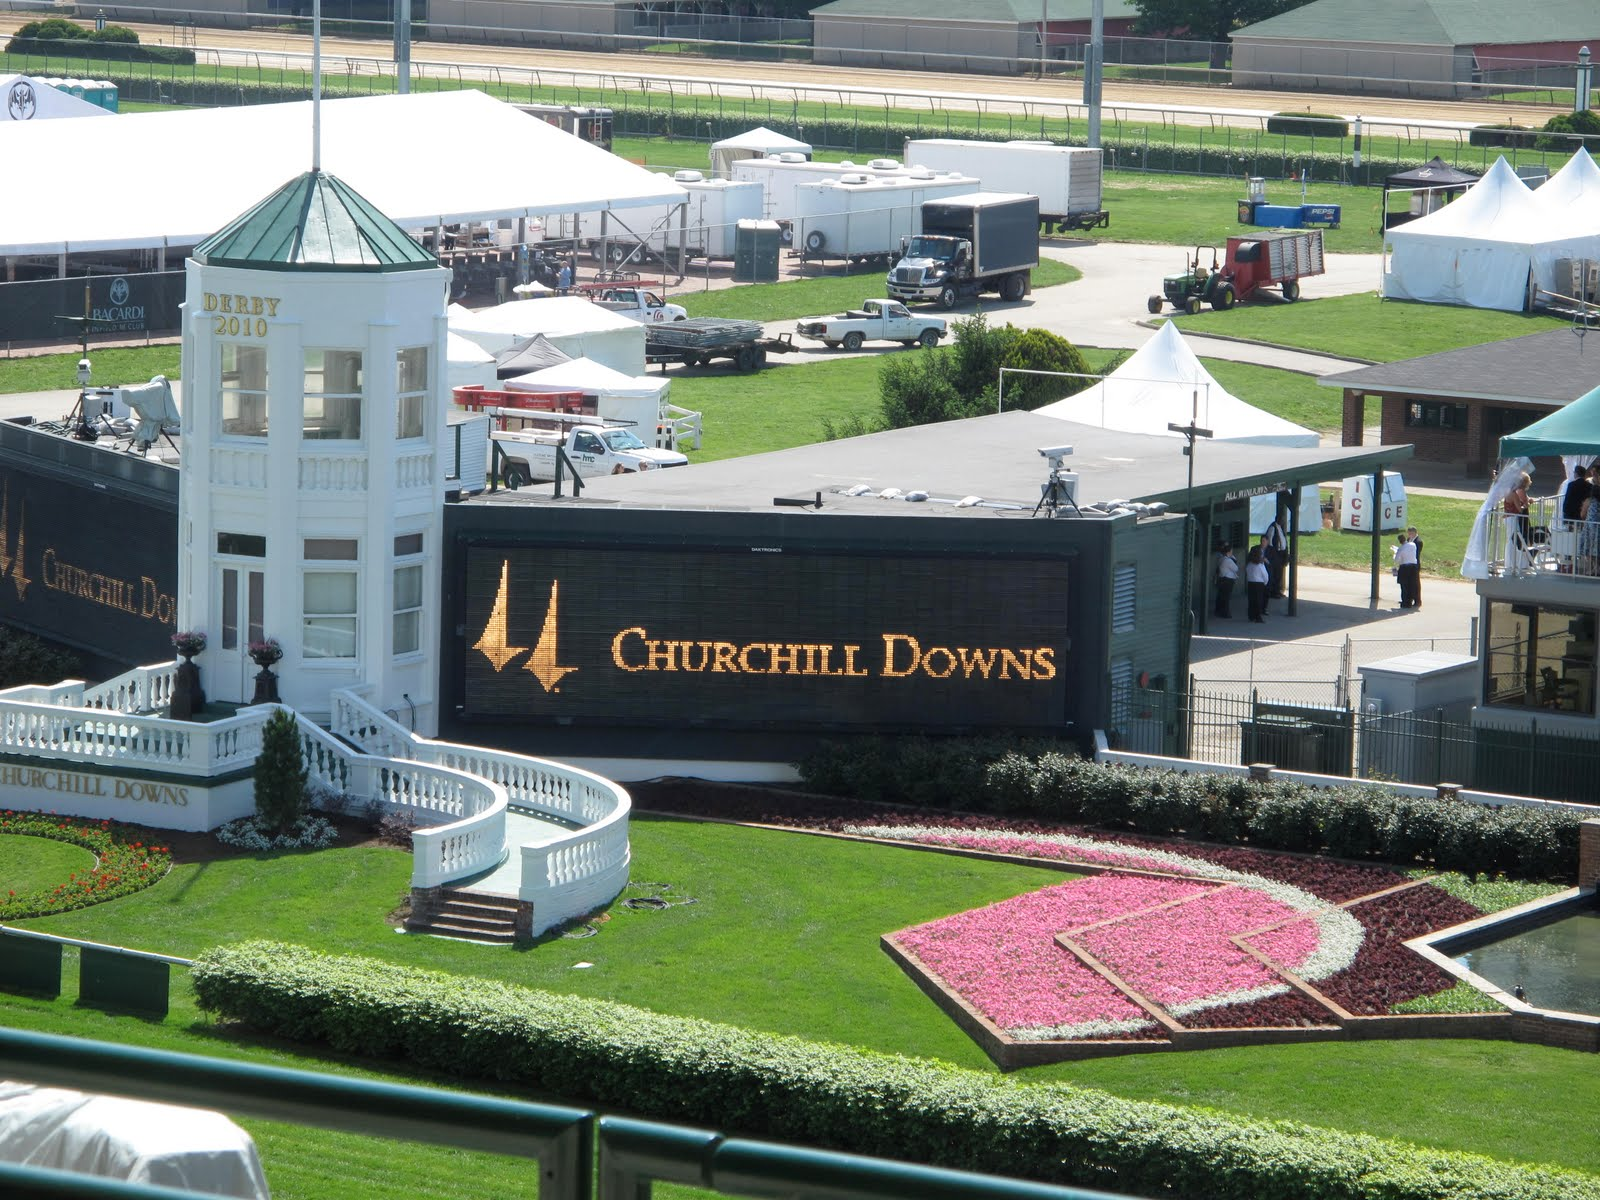 Churchill Downs Tote Board for the Race!